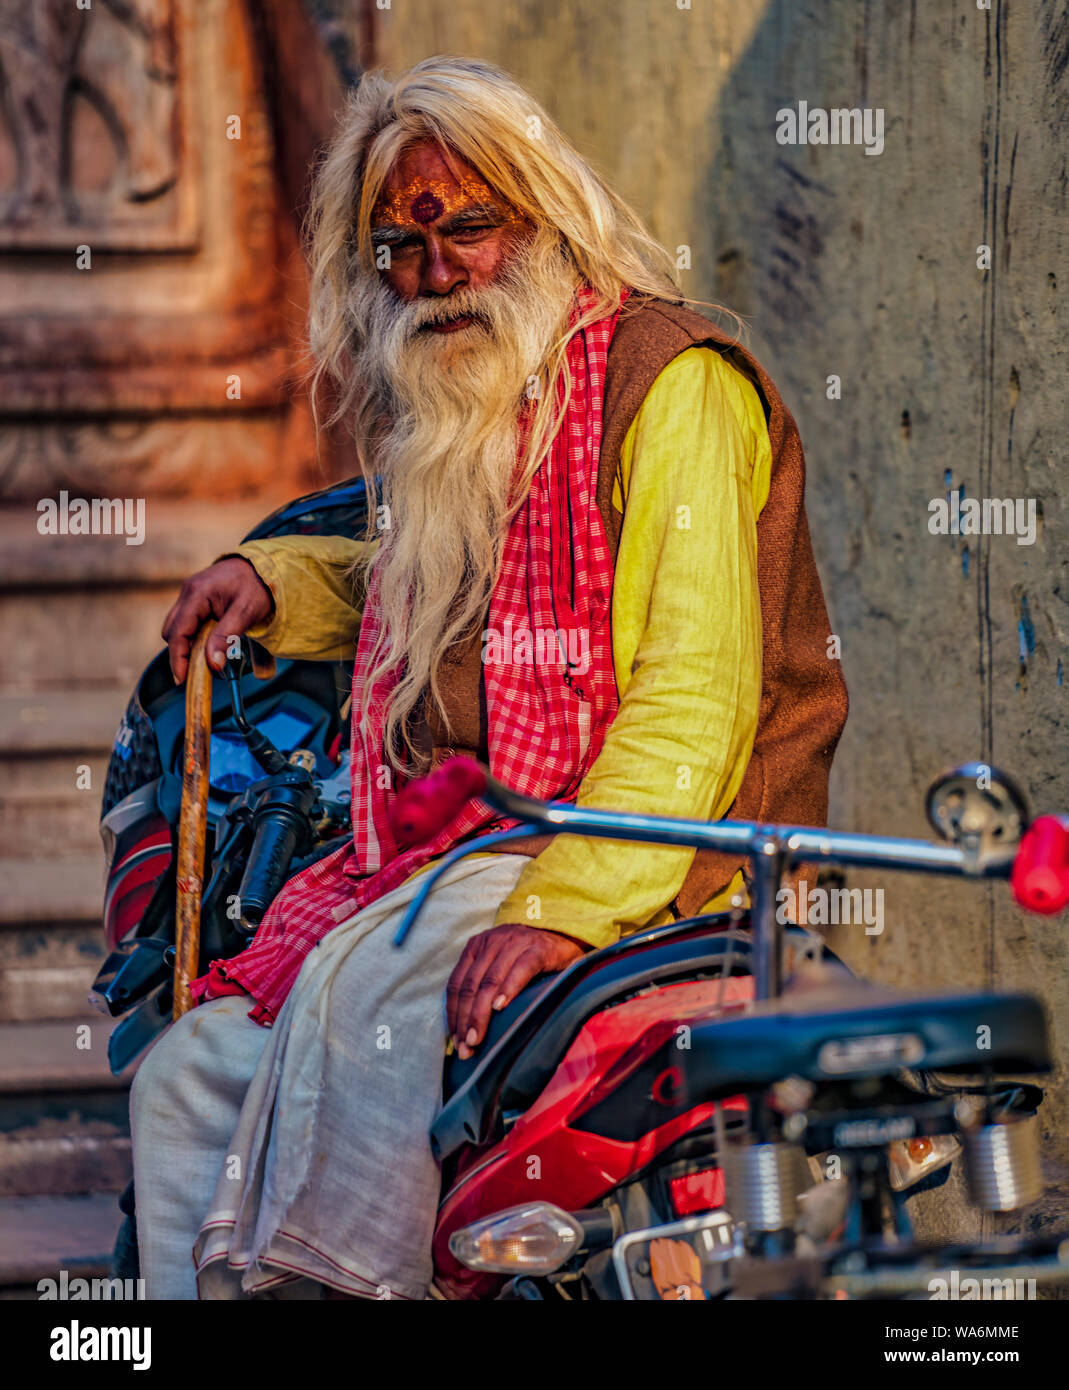 Vrindavan, India - February 22, 2018 - Old man sits on a motorcycle while holding a wooden cane Stock Photo